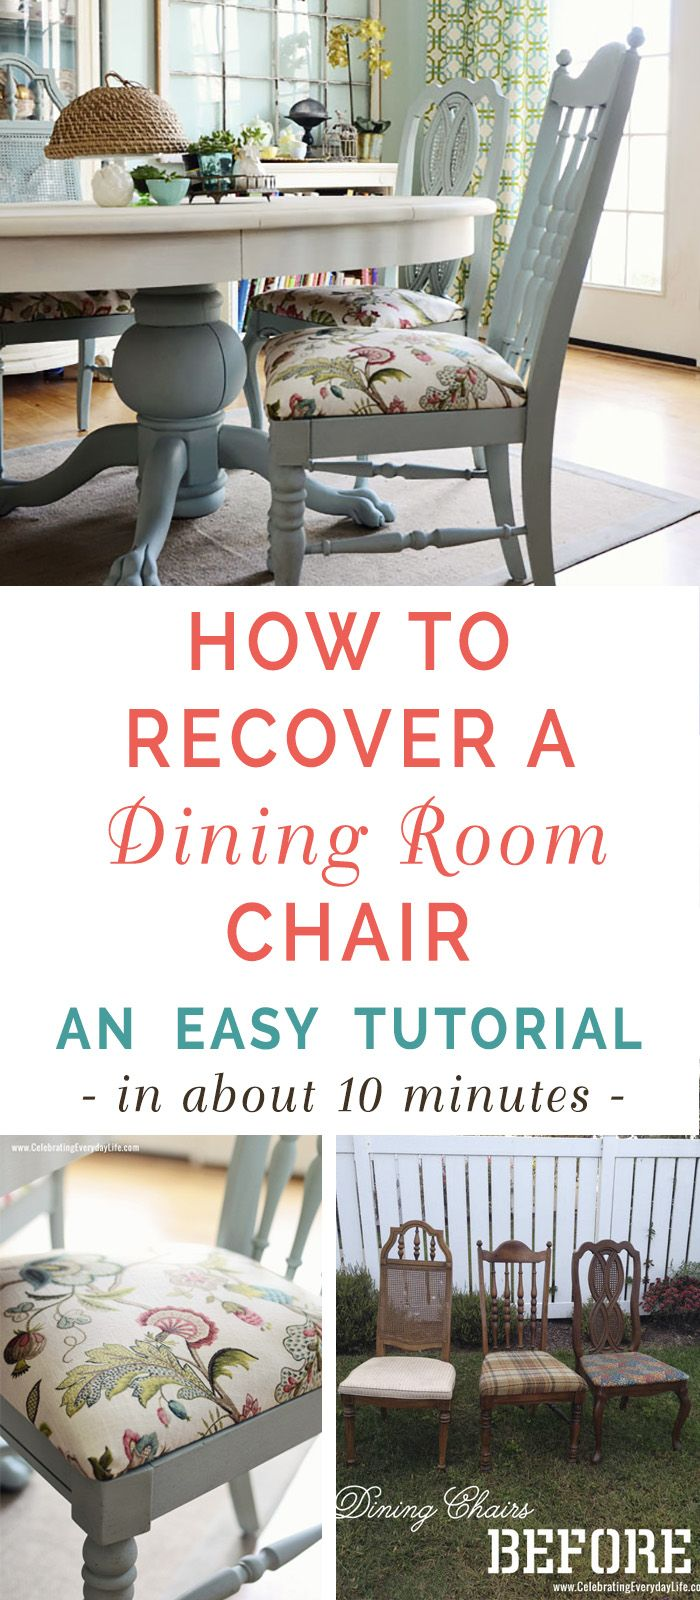 Behind the chair ecards - How To Recover A Dining Room Chair Easily